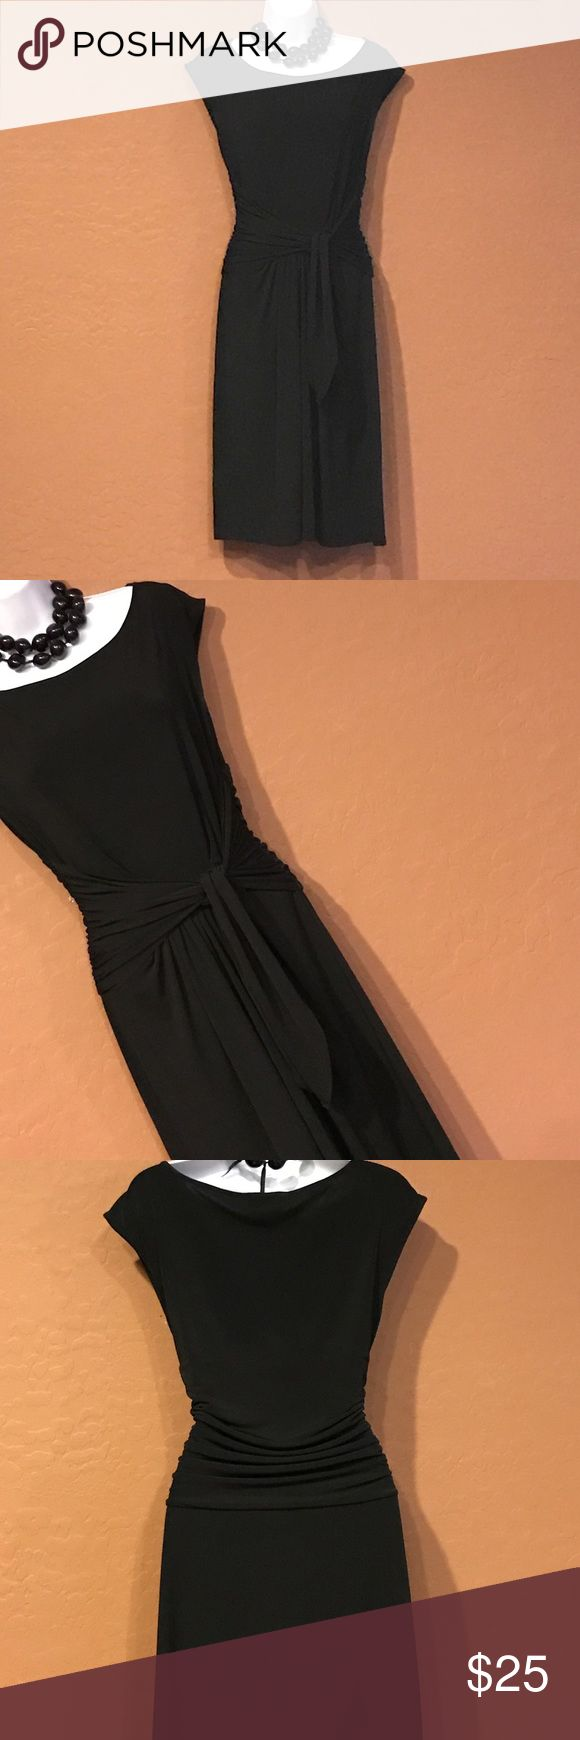 👗Max & Cleo Black Wrap Dress Excellent Condition, tie waist, short sleeve, stretch. Max & Cleo Dresses